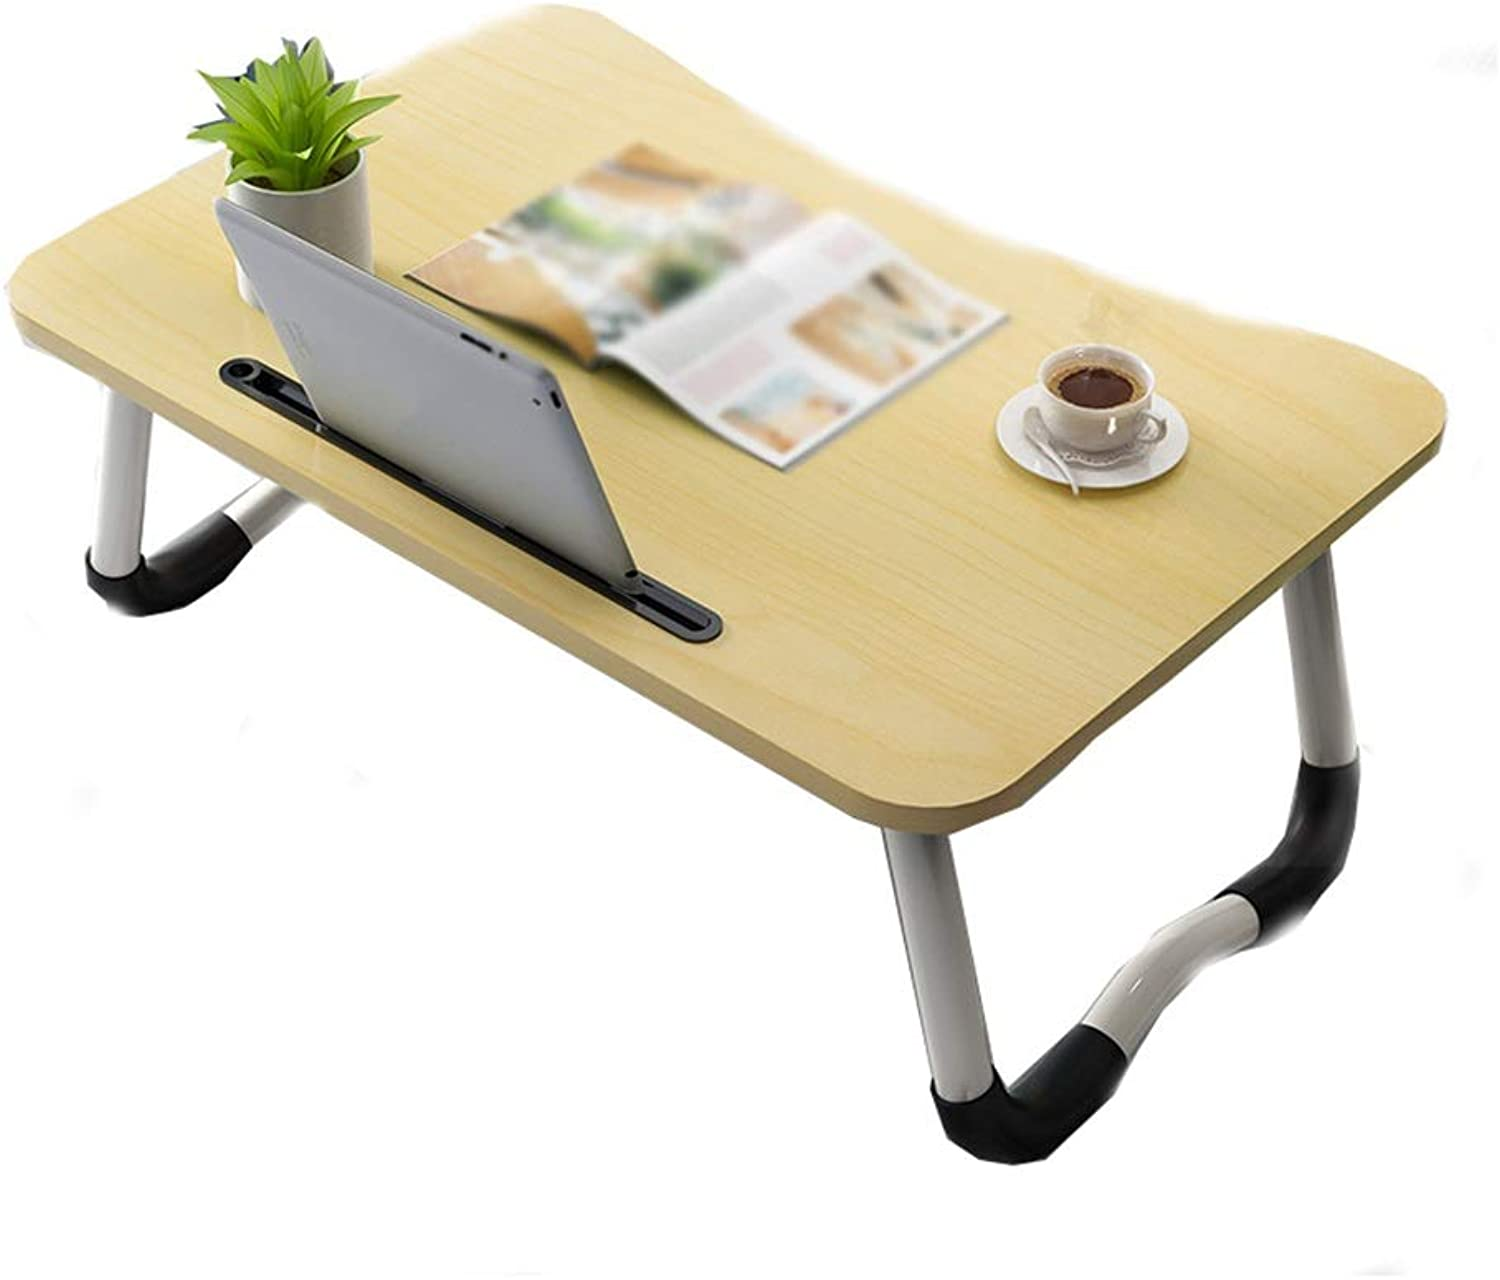 Folding Bed Table, Versatile and Portable, Suitable for Bedroom Living Room On Bedroom Bed (4 colors) (color   Maple color)